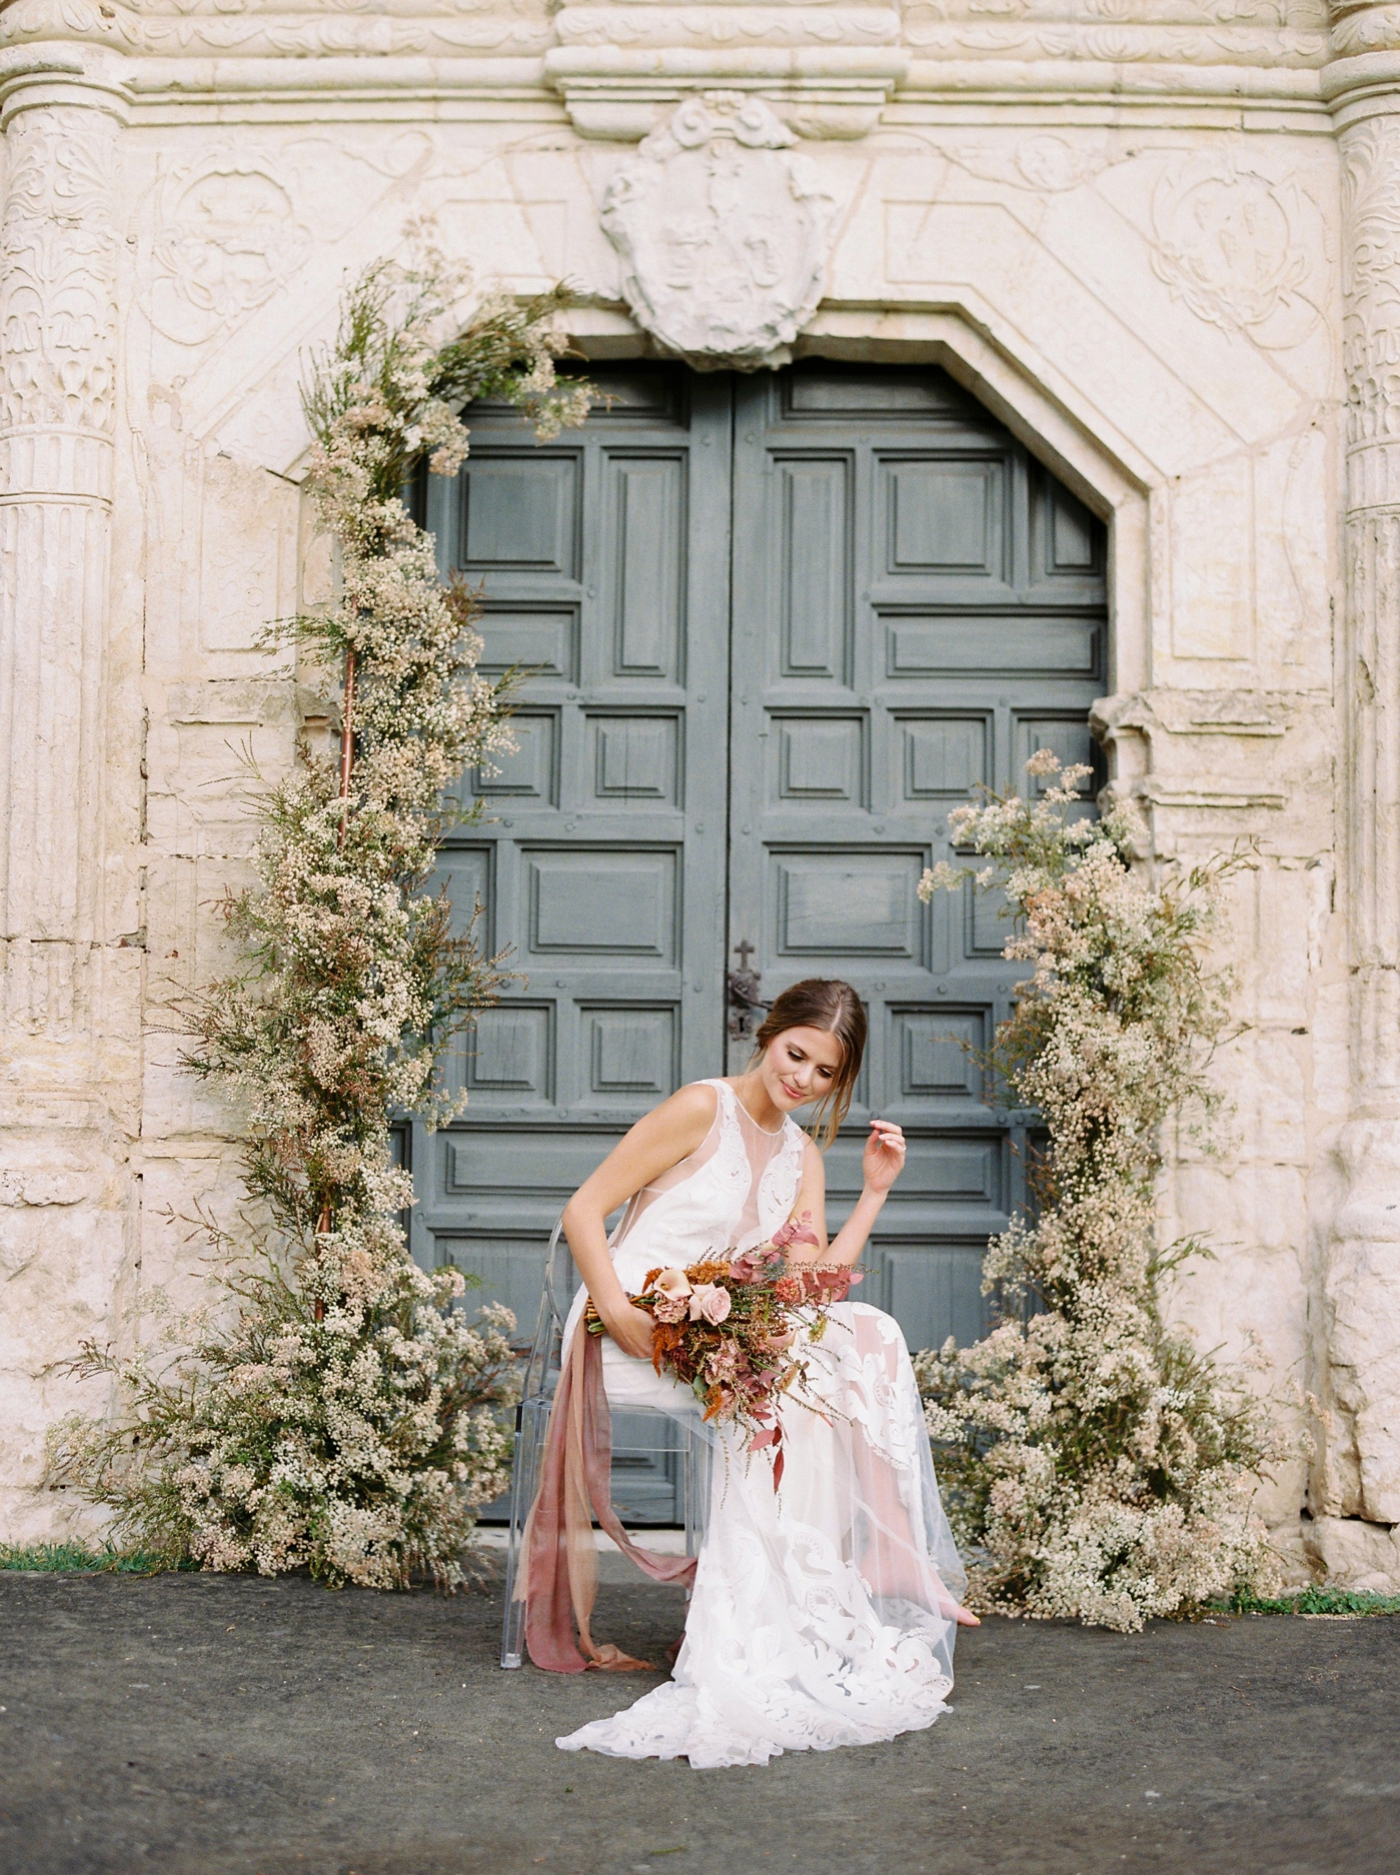 Justine milton photography | san antonio wedding photographers | fine art film photographer | destination wedding |flower arch outdoor ceremony